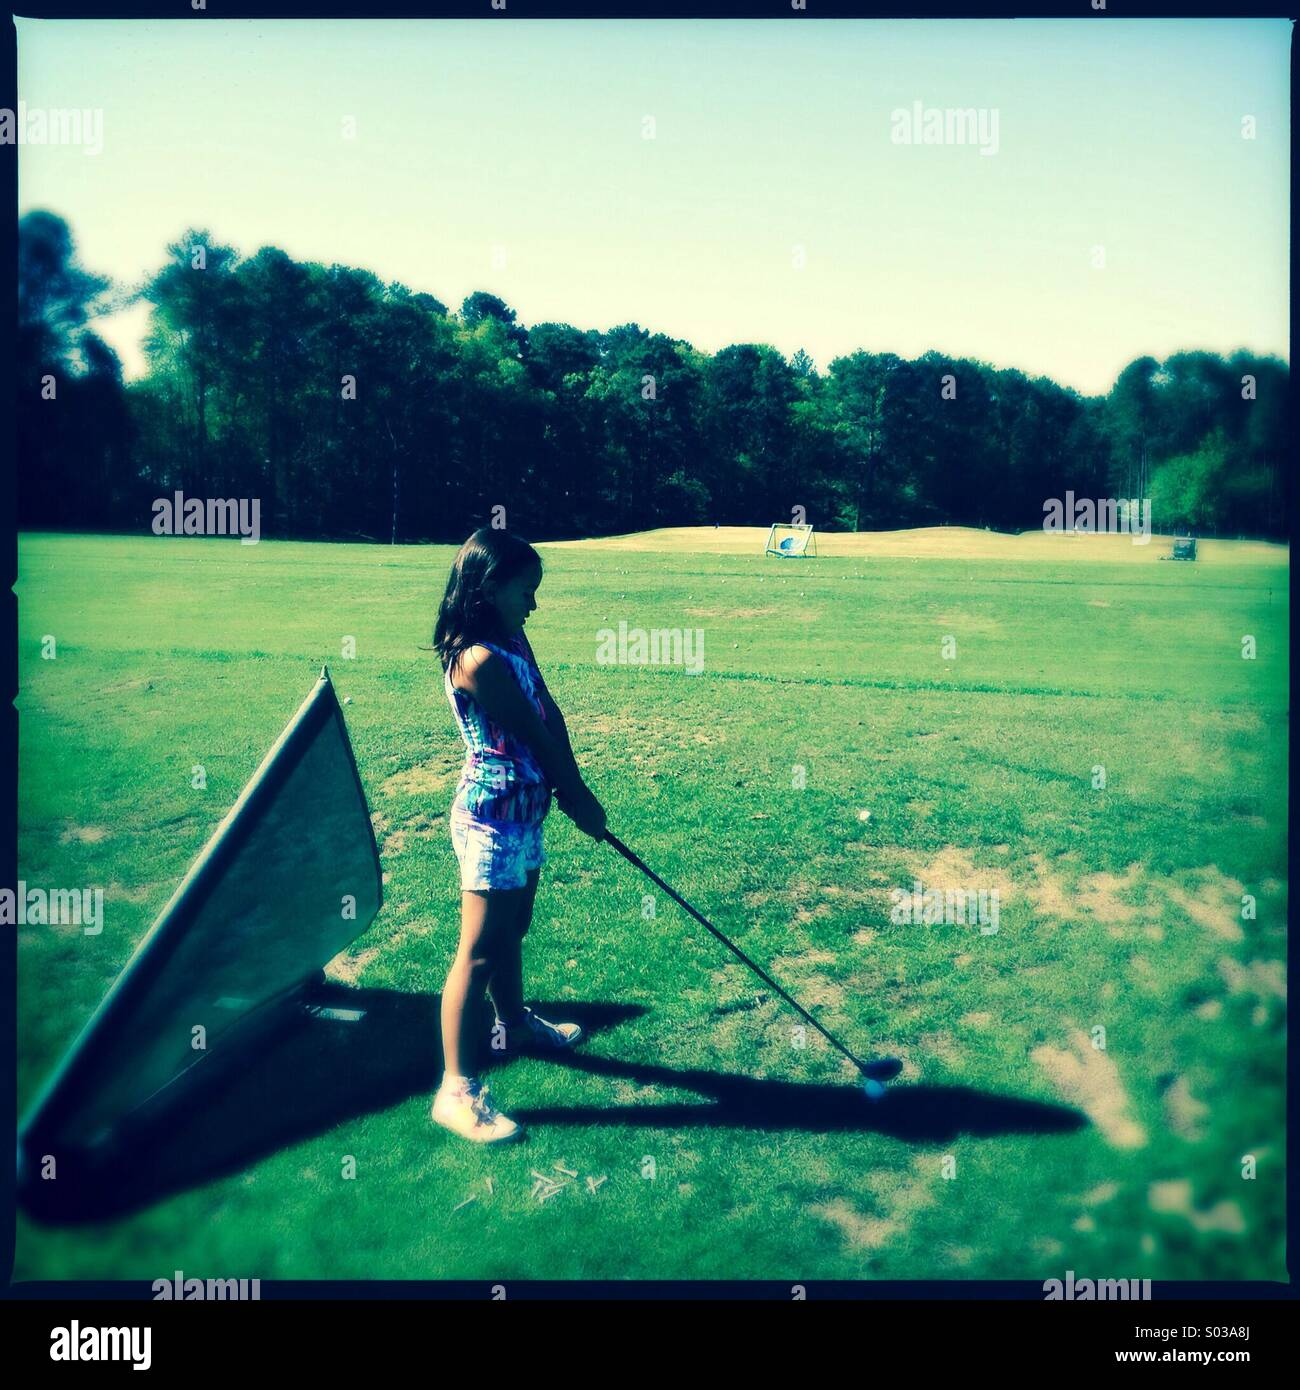 Little girl golfer - Stock Image